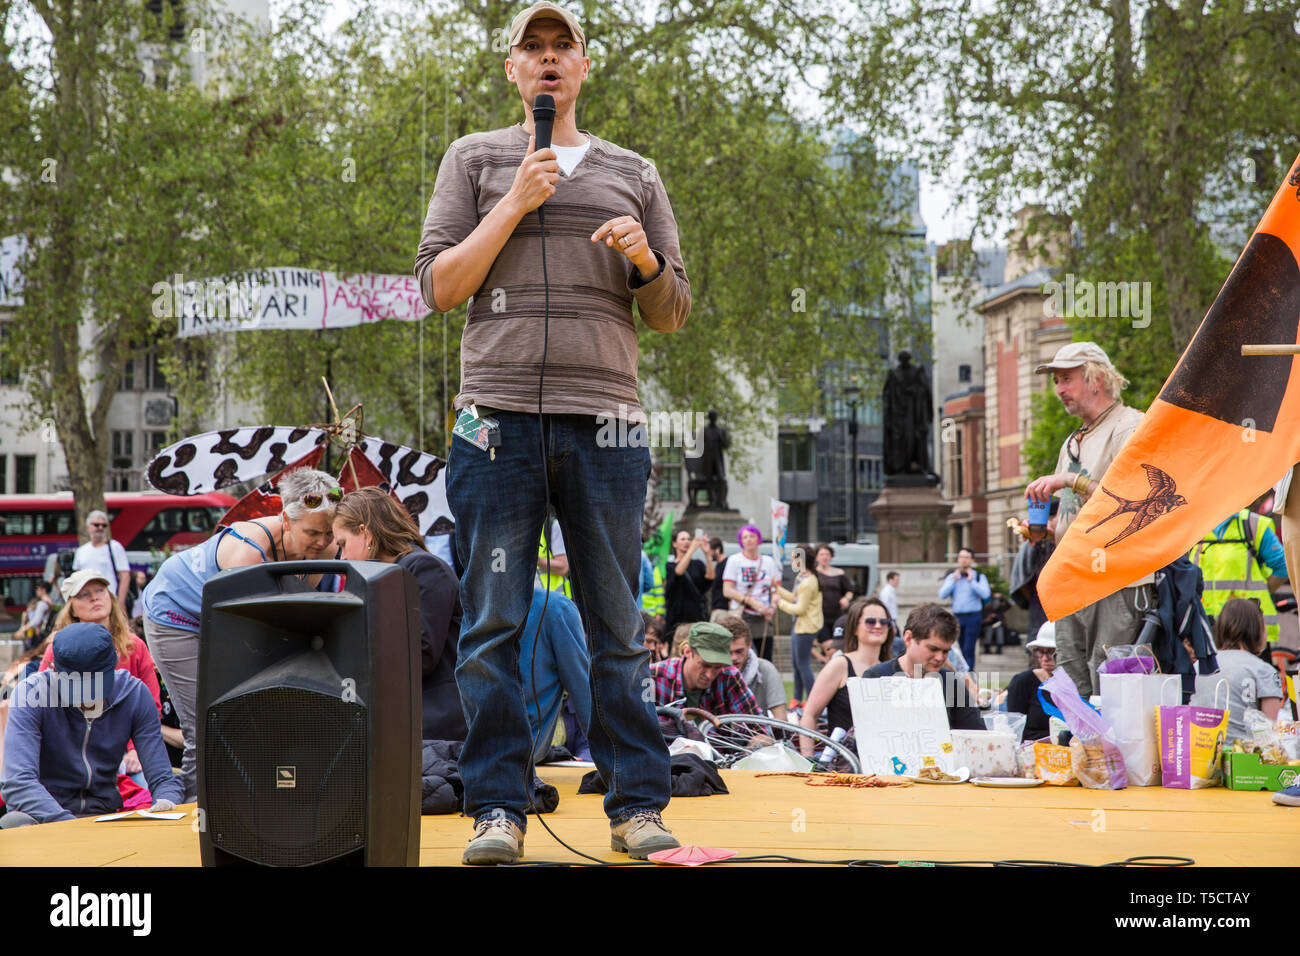 London, UK. 23rd April 2019. Clive Lewis MP, Shadow Minister for Sustainable Economics, addresses climate change activists from Extinction Rebellion at an assembly in Parliament Square prior to an attempt to deliver to Parliament activists' letters requesting meetings to discuss climate change with their Members of Parliament. Credit: Mark Kerrison/Alamy Live News - Stock Image